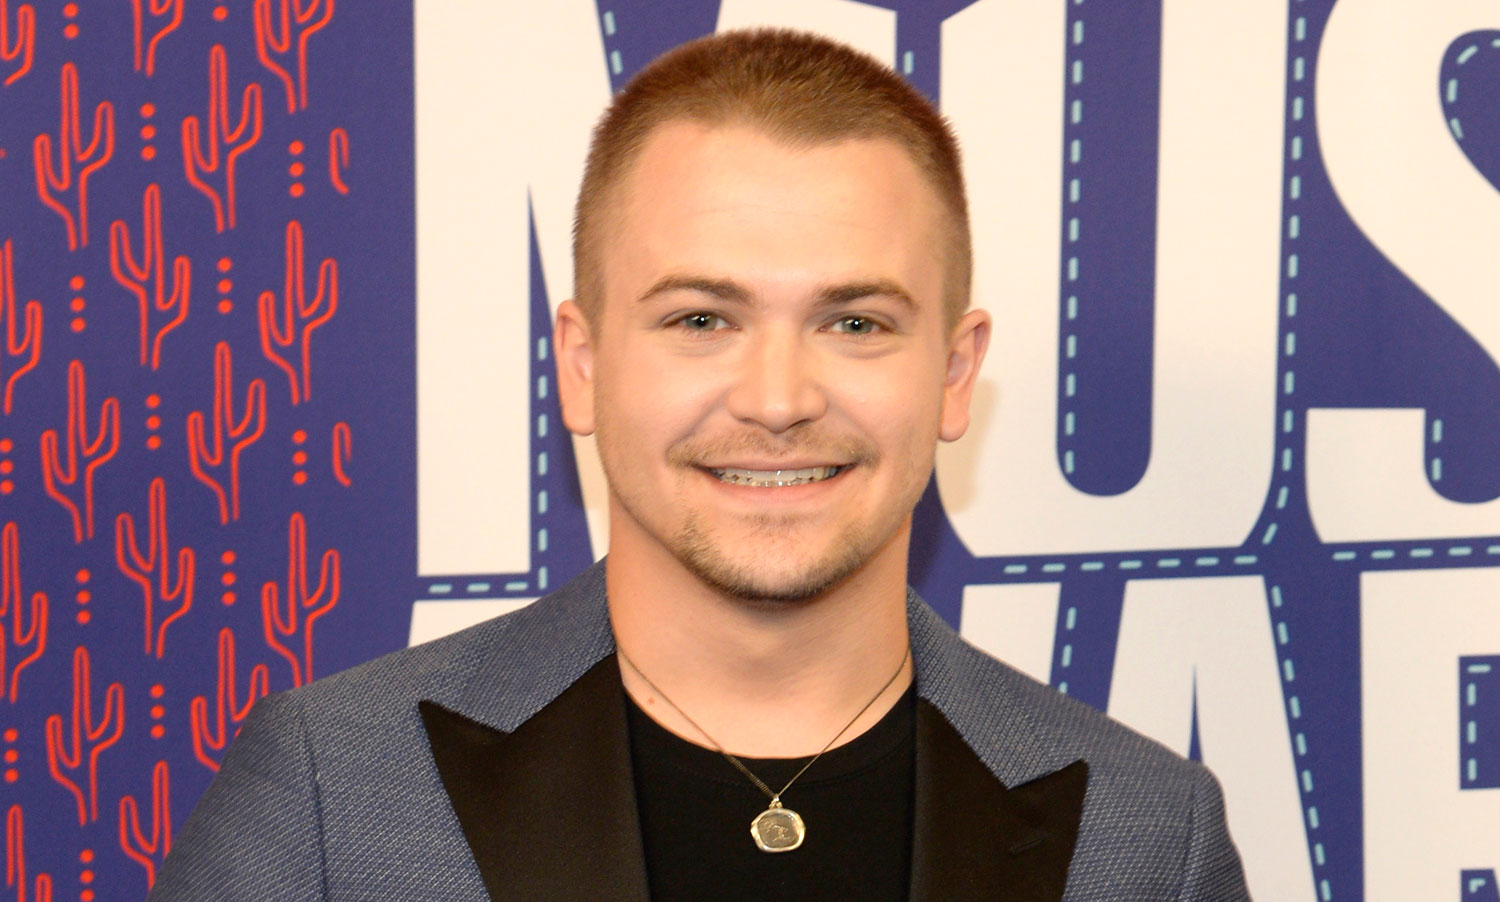 Hunter Hayes Drops New Song 'One Good Reason' – Listen Now!